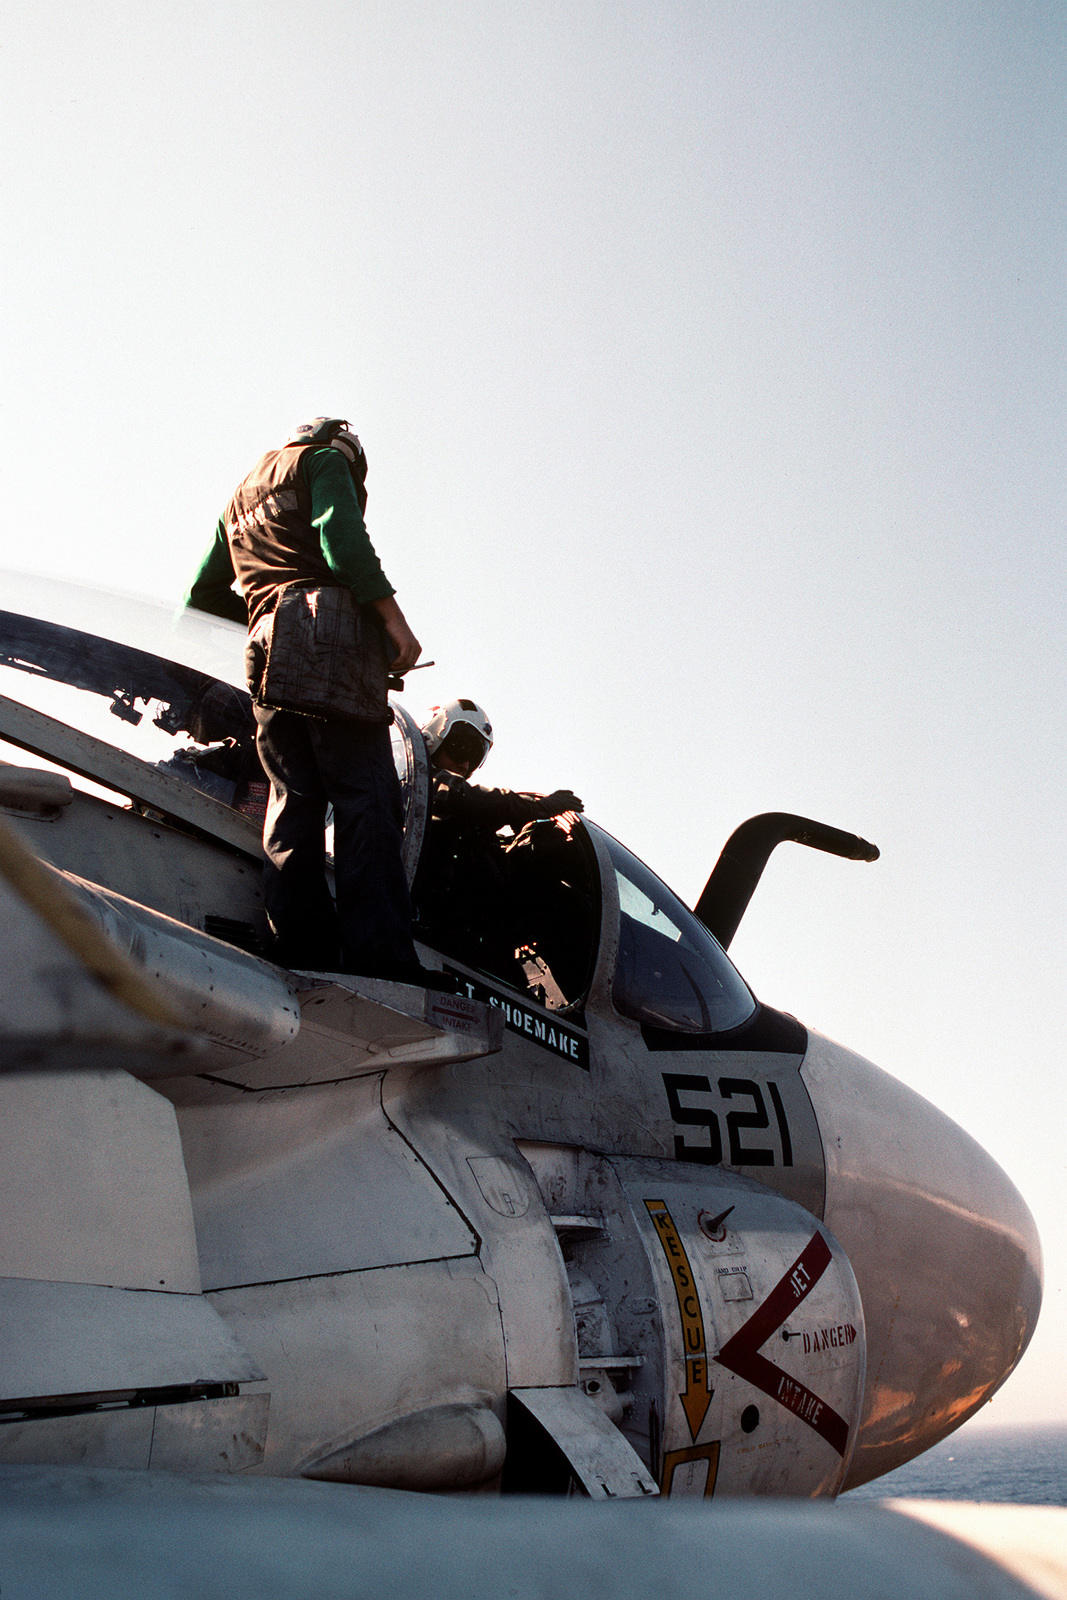 A maintenance crewman stands as an Attack Squadron 34 (VA-34) bombardier-navigator climbs into the cockpit of an A-6E Intruder aircraft on the flight deck of the nuclear-powered aircraft carrier USS DWIGHT D. EISENHOWER (CVN-69). The EISENHOWER is on station in the Persian Gulf in response to Iraq's invasion of Kuwait